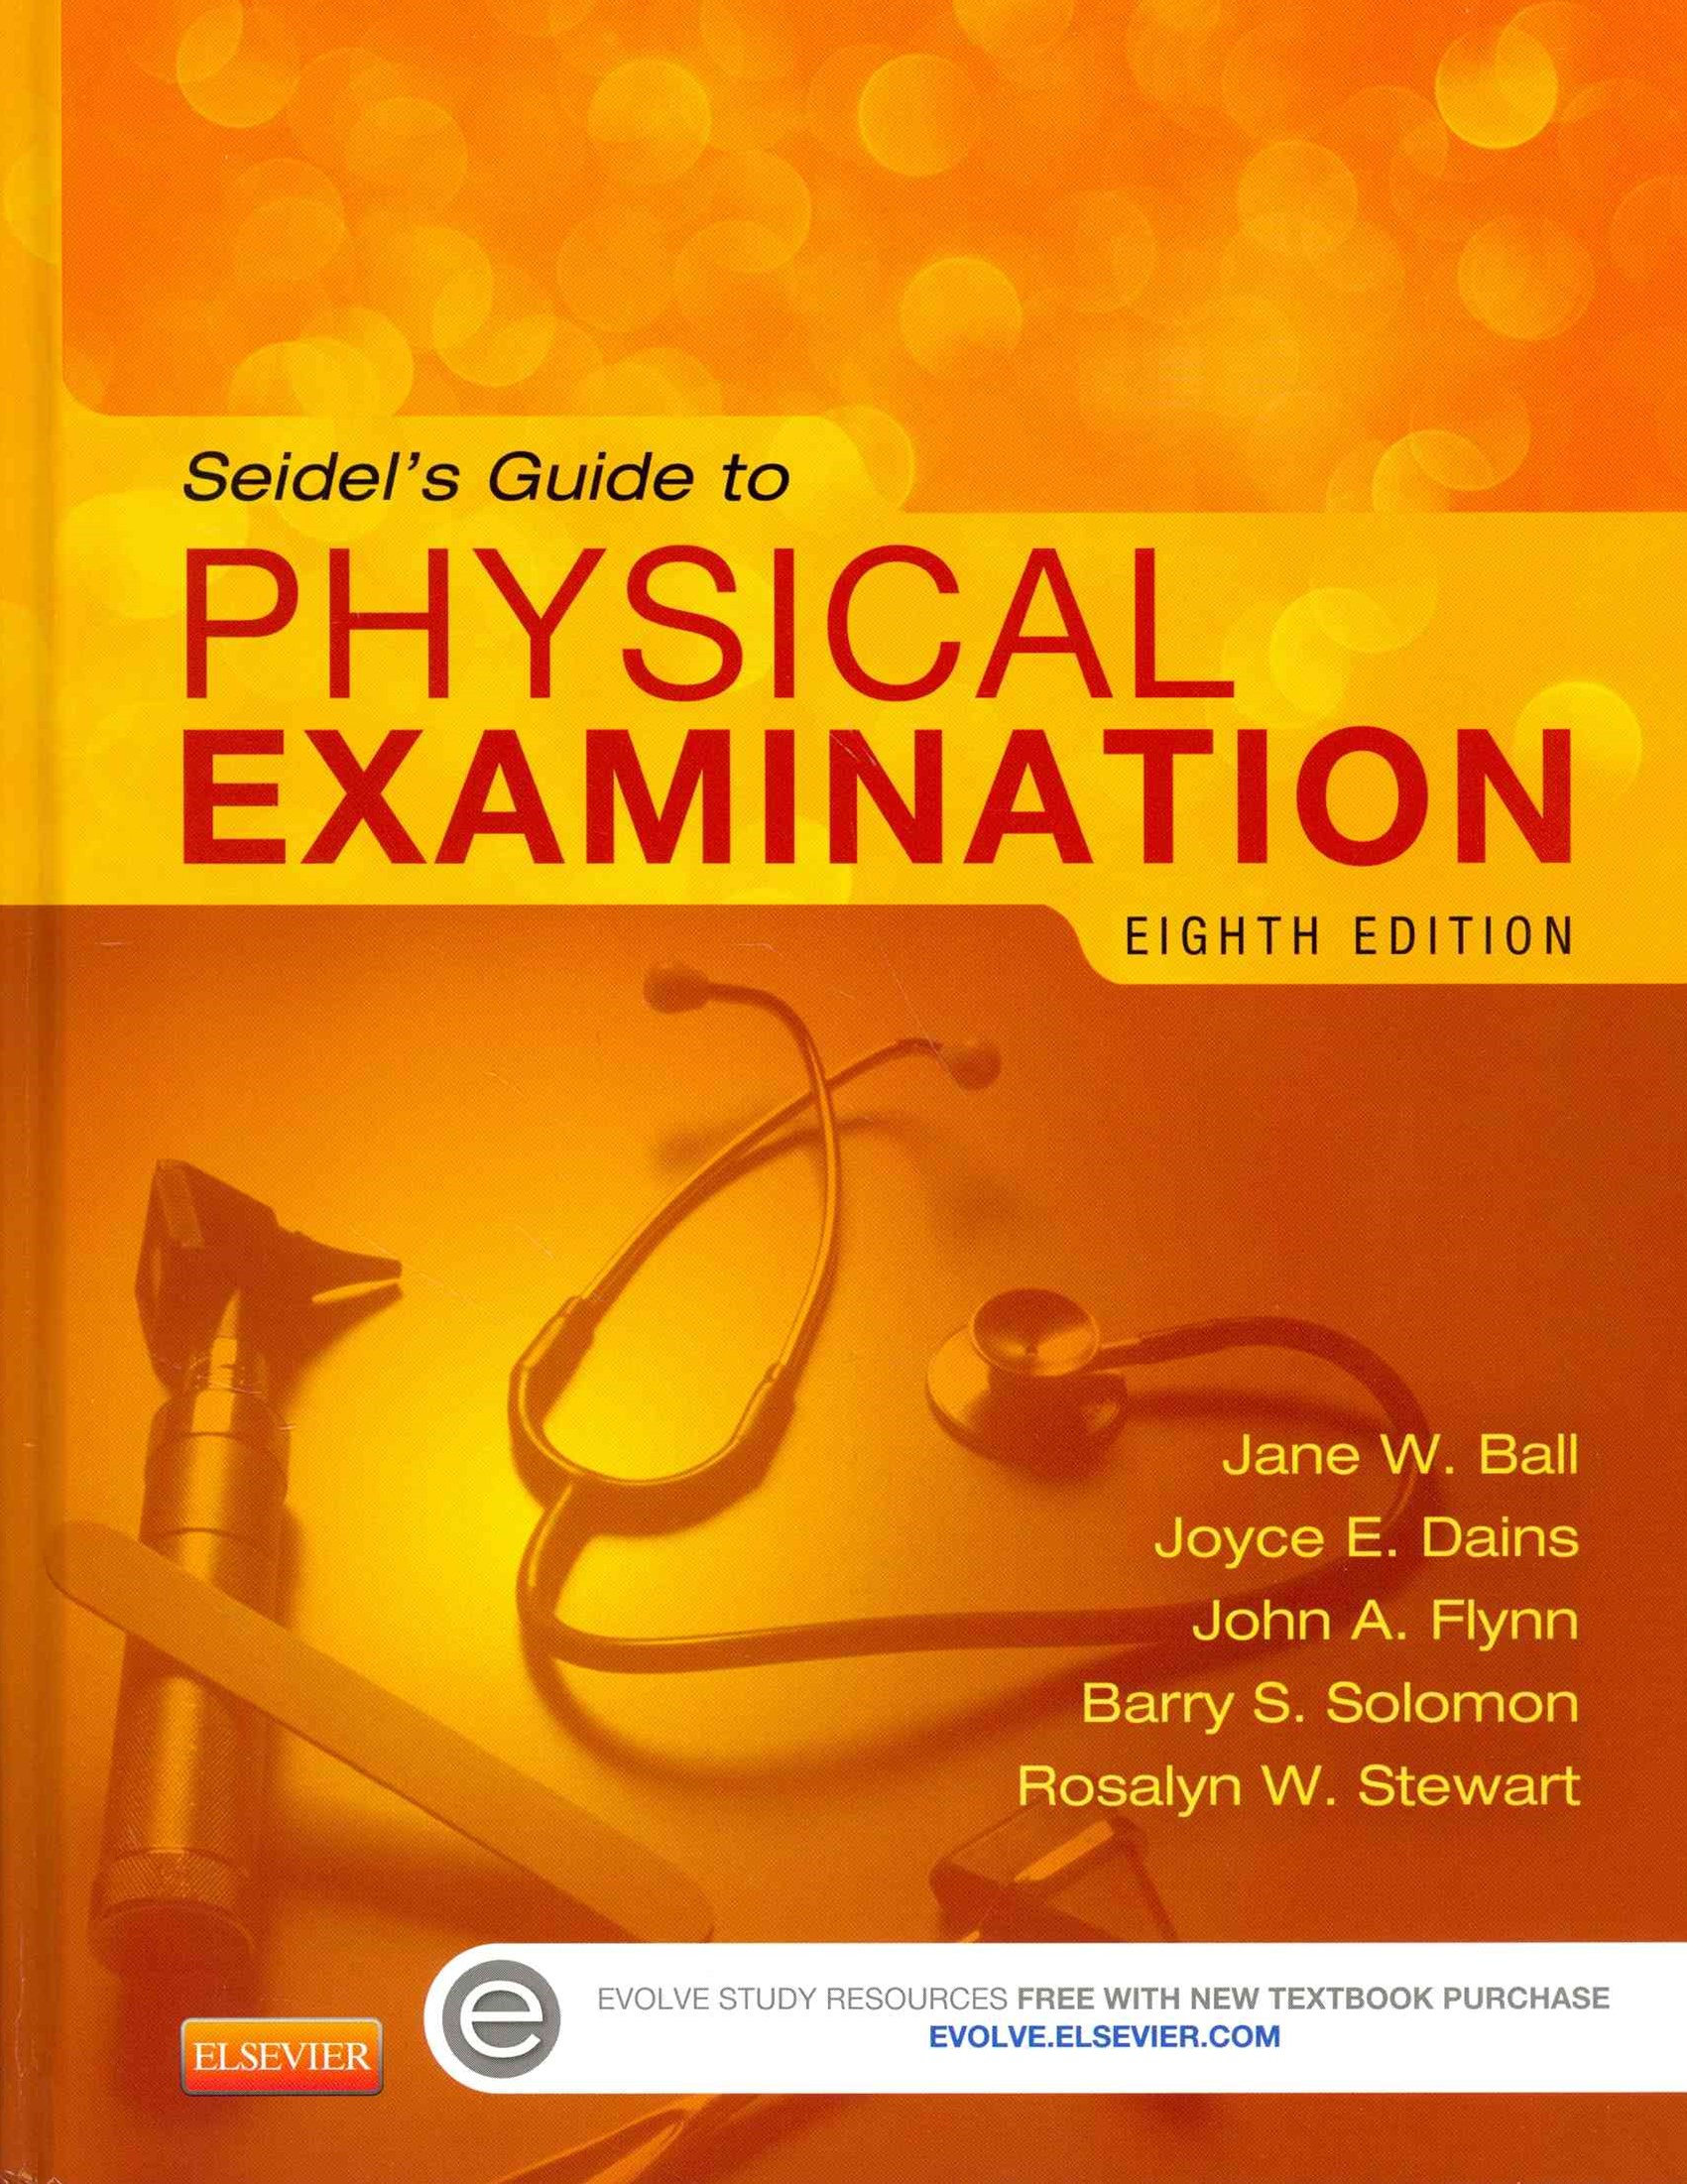 Guide to Physical Examination